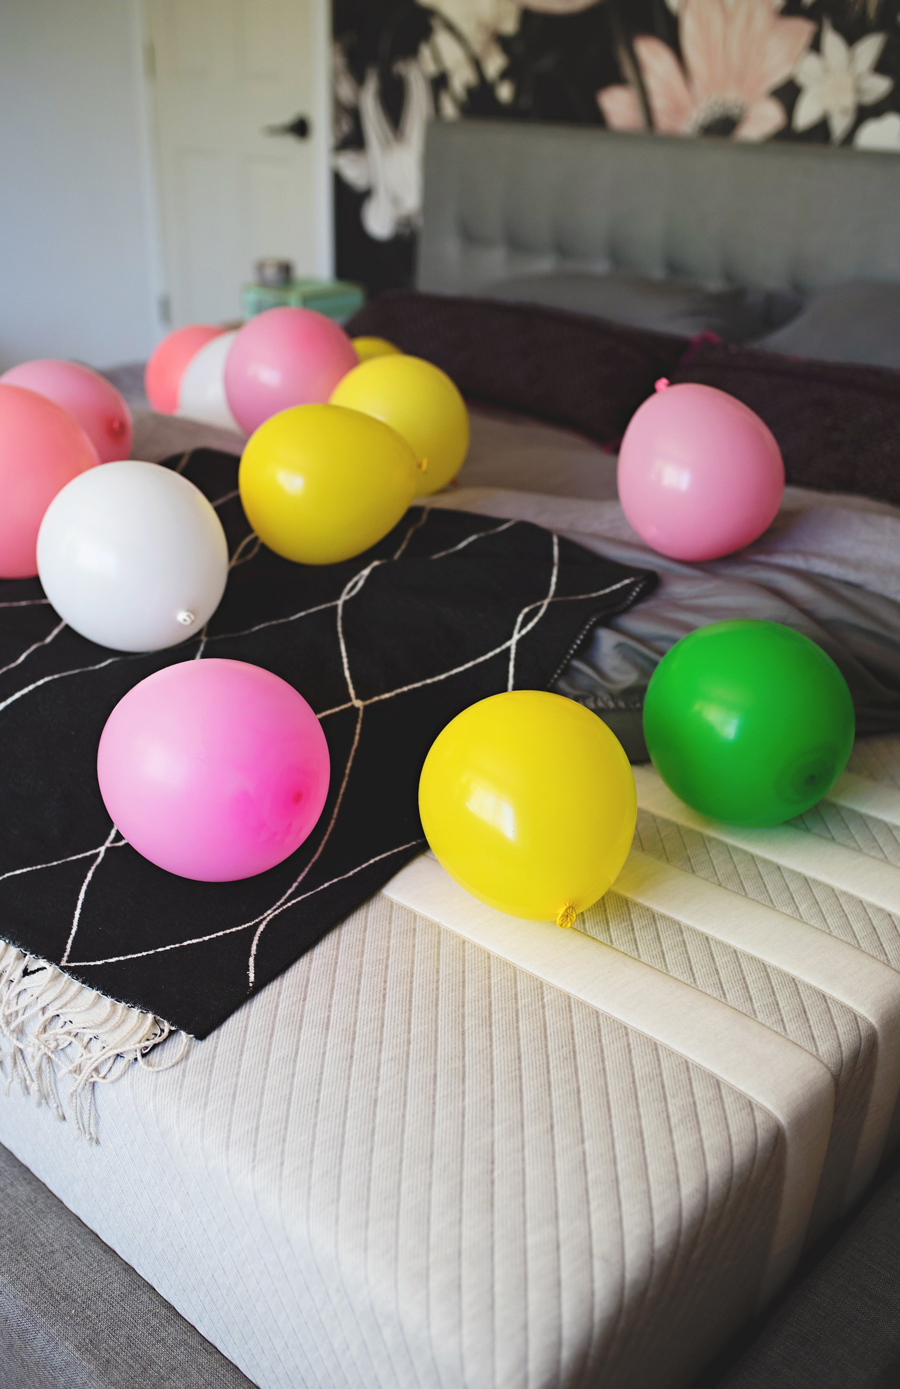 Bedroom balloon surprise DIY